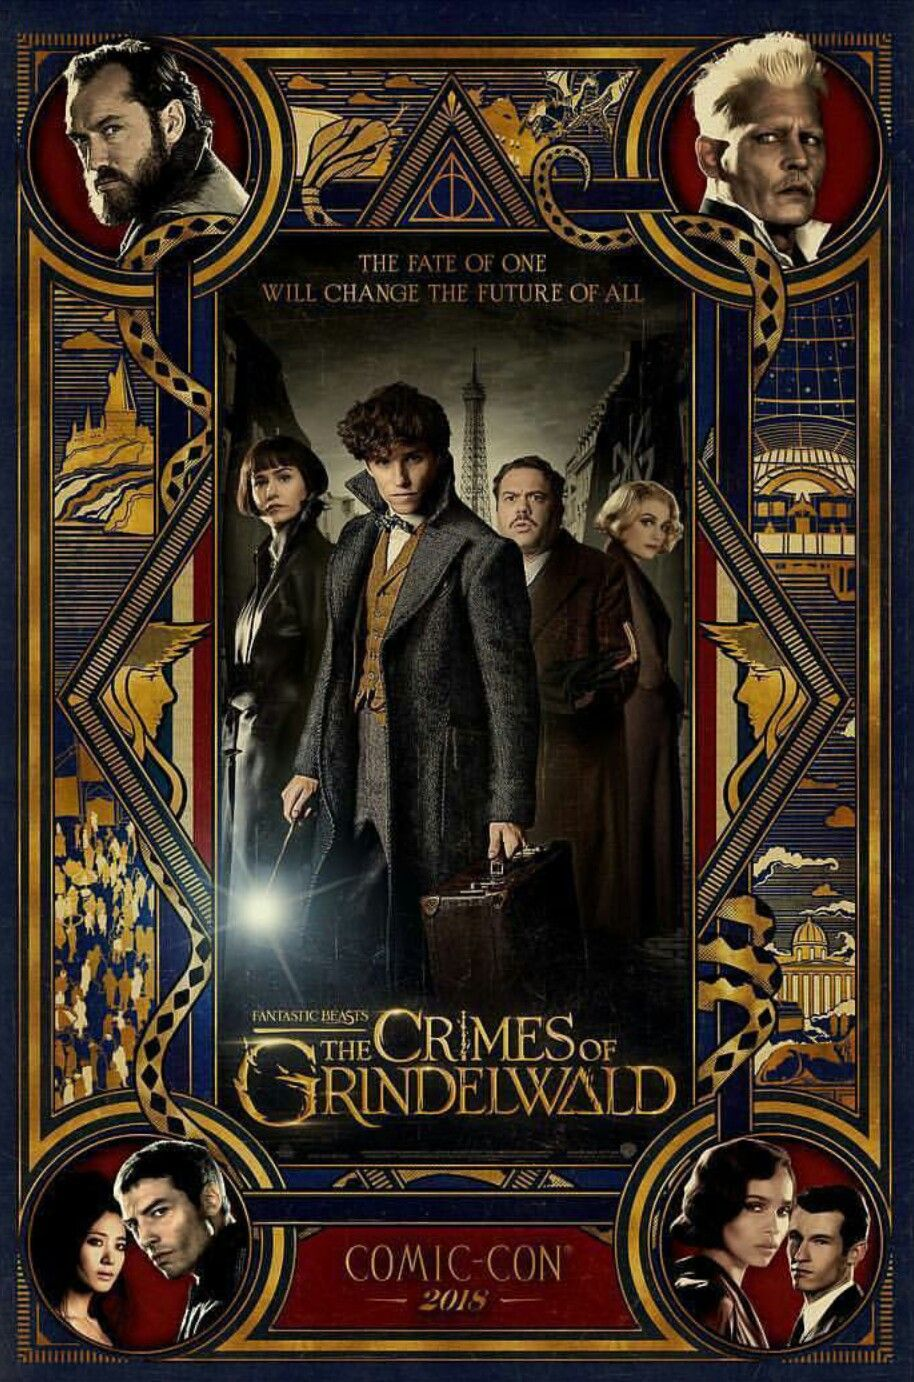 Pin By Zeynep On Hary Potter Fantastic Beasts Fantastic Beasts